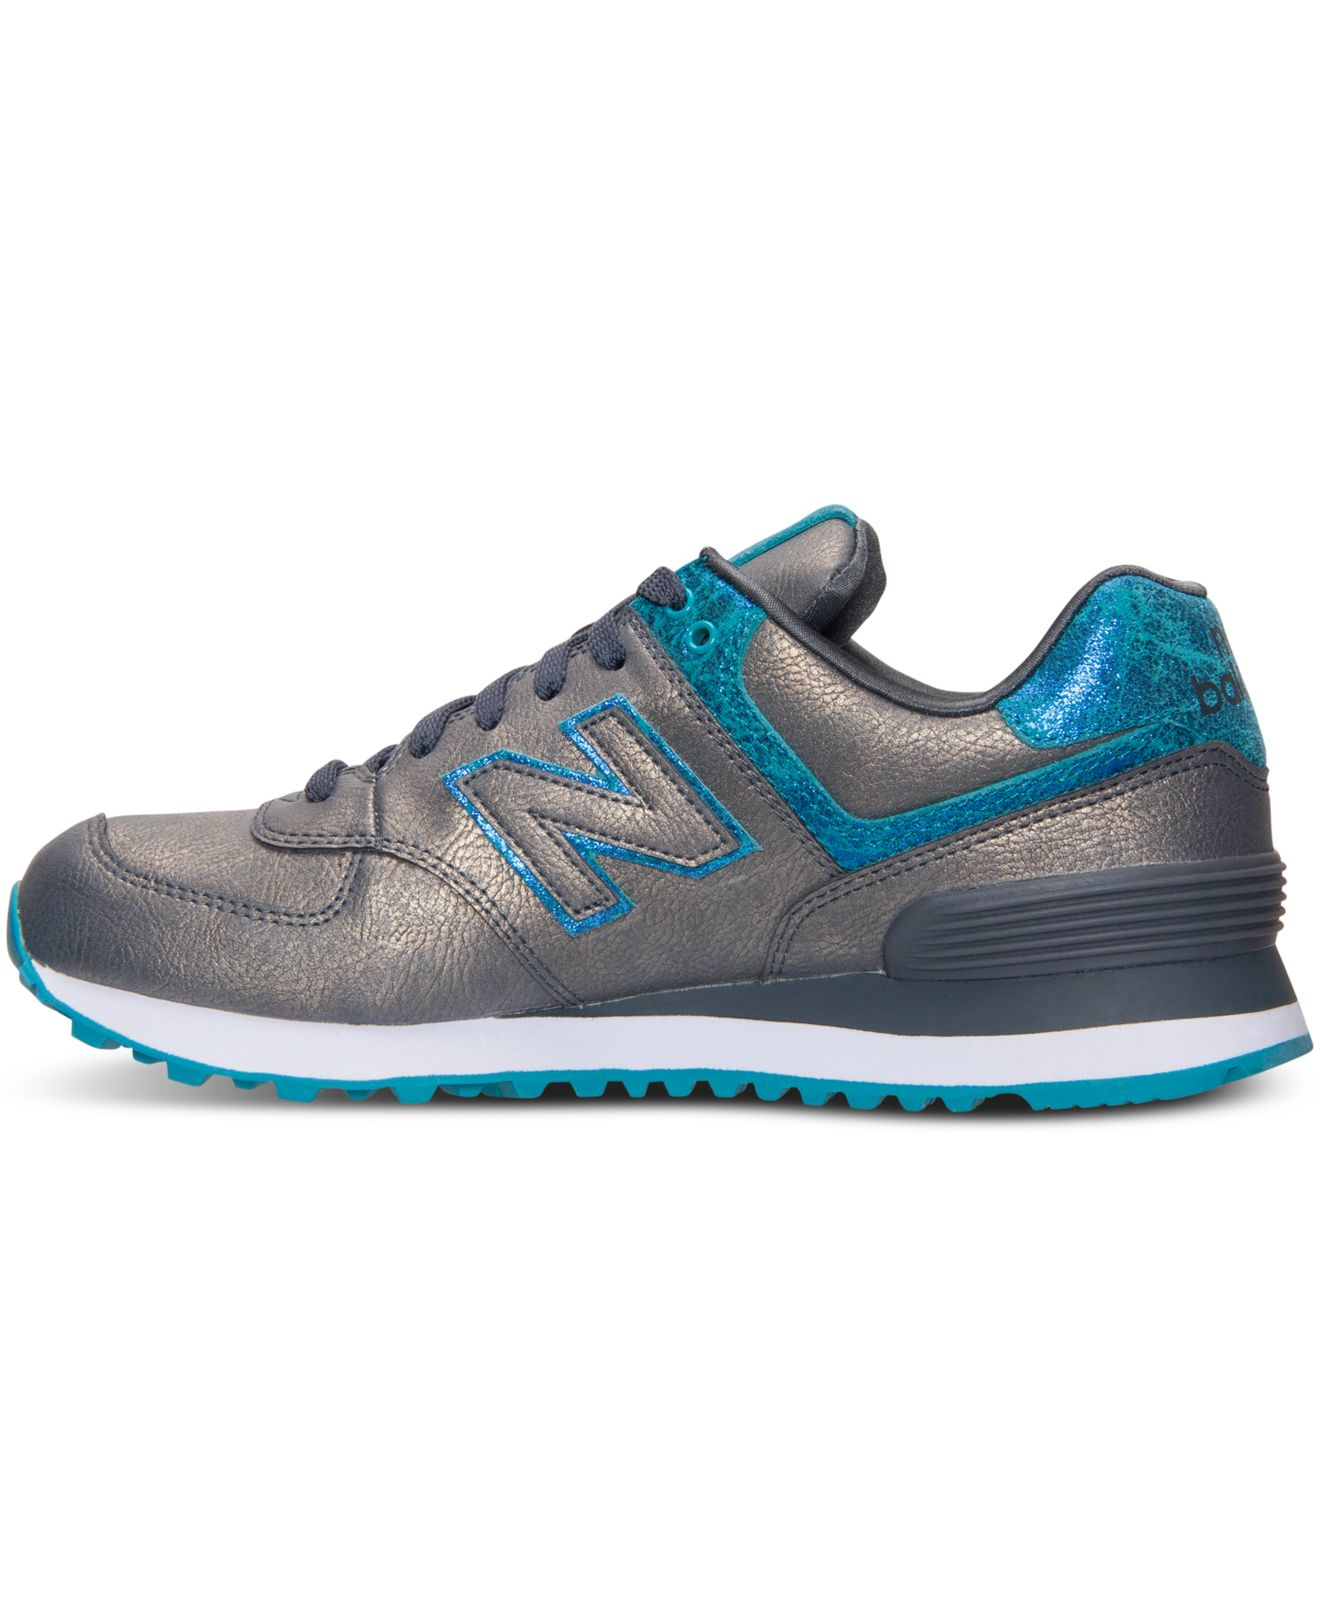 574 new balance blue with pink glow and white